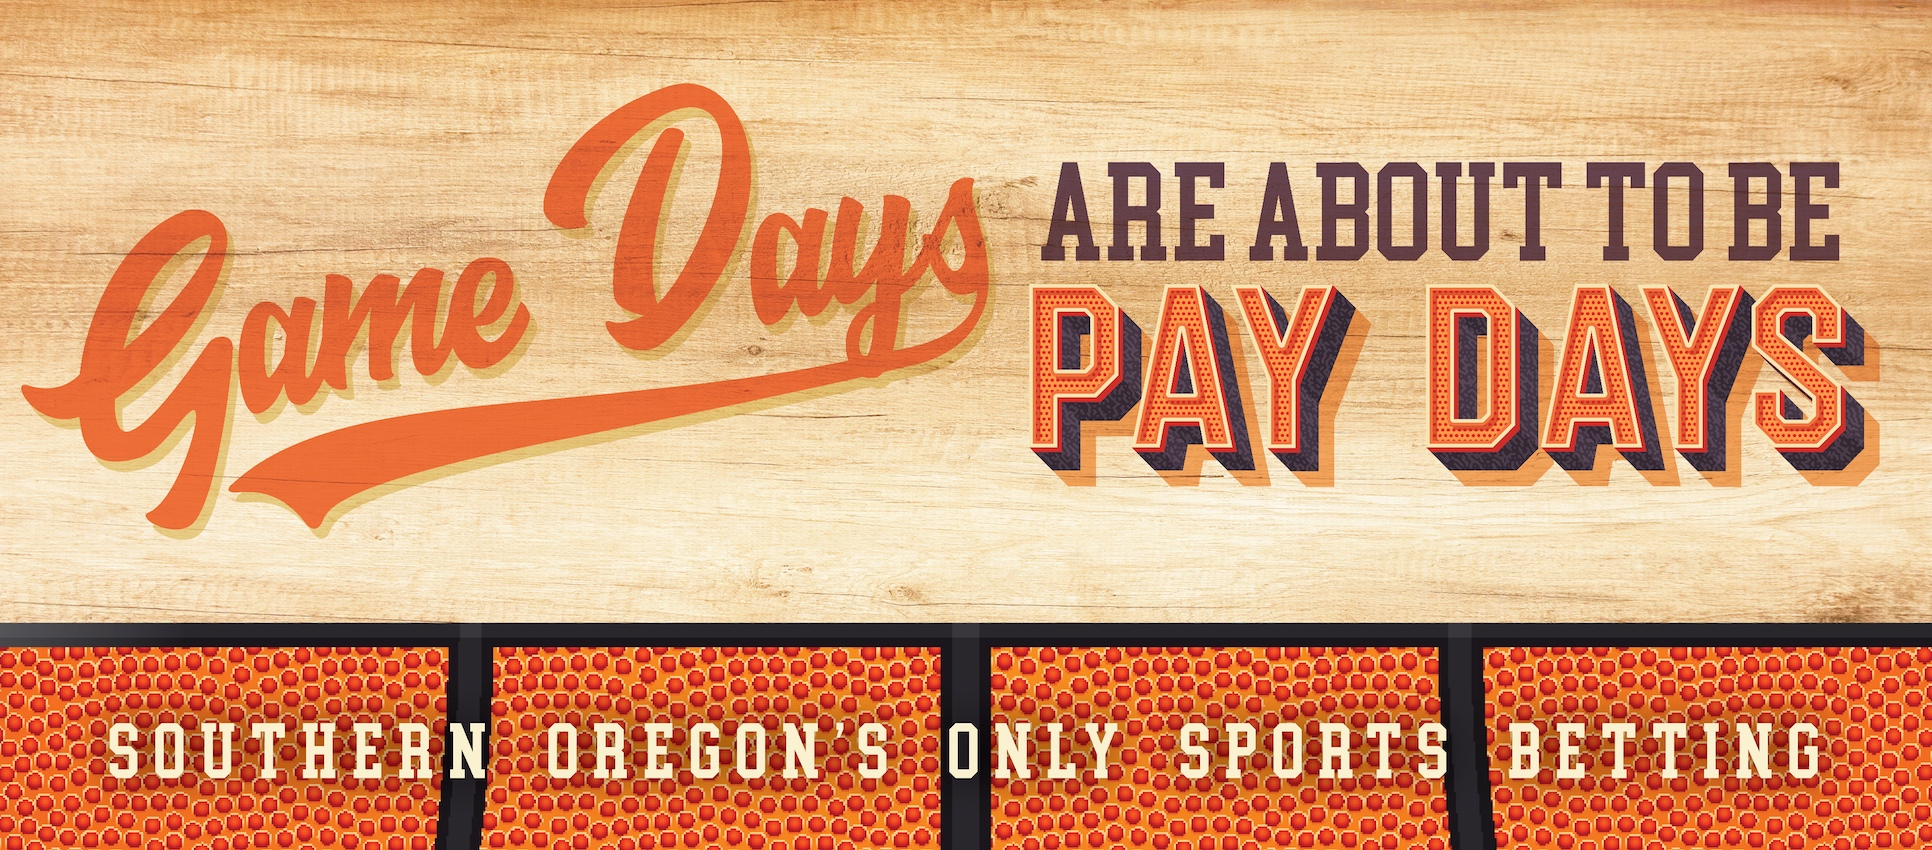 Game days are about to be pay days! Southern Oregon's only sports betting is at The Mill Casino